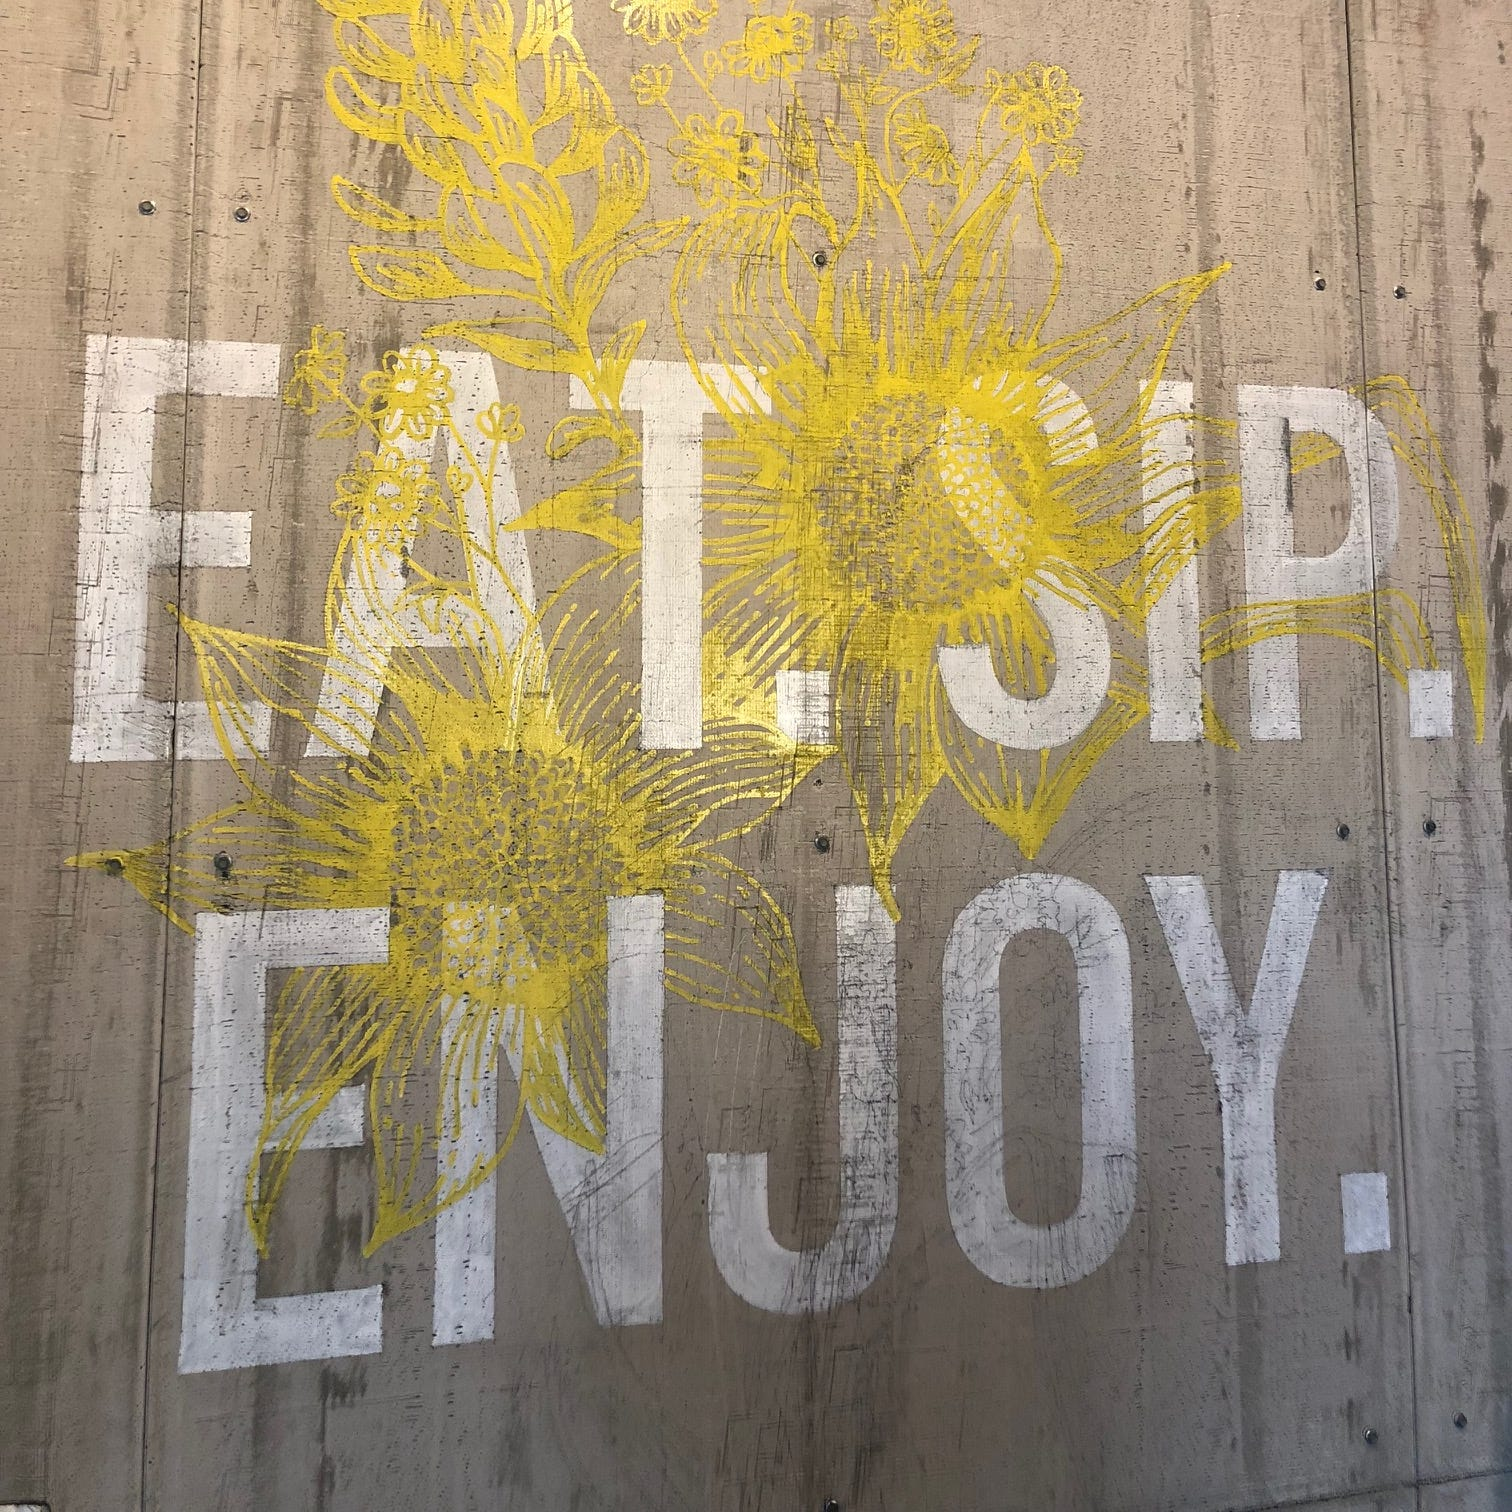 This 'Eat. Sip. Enjoy.' illustration is displayed inside Wildflower in Phoenix.